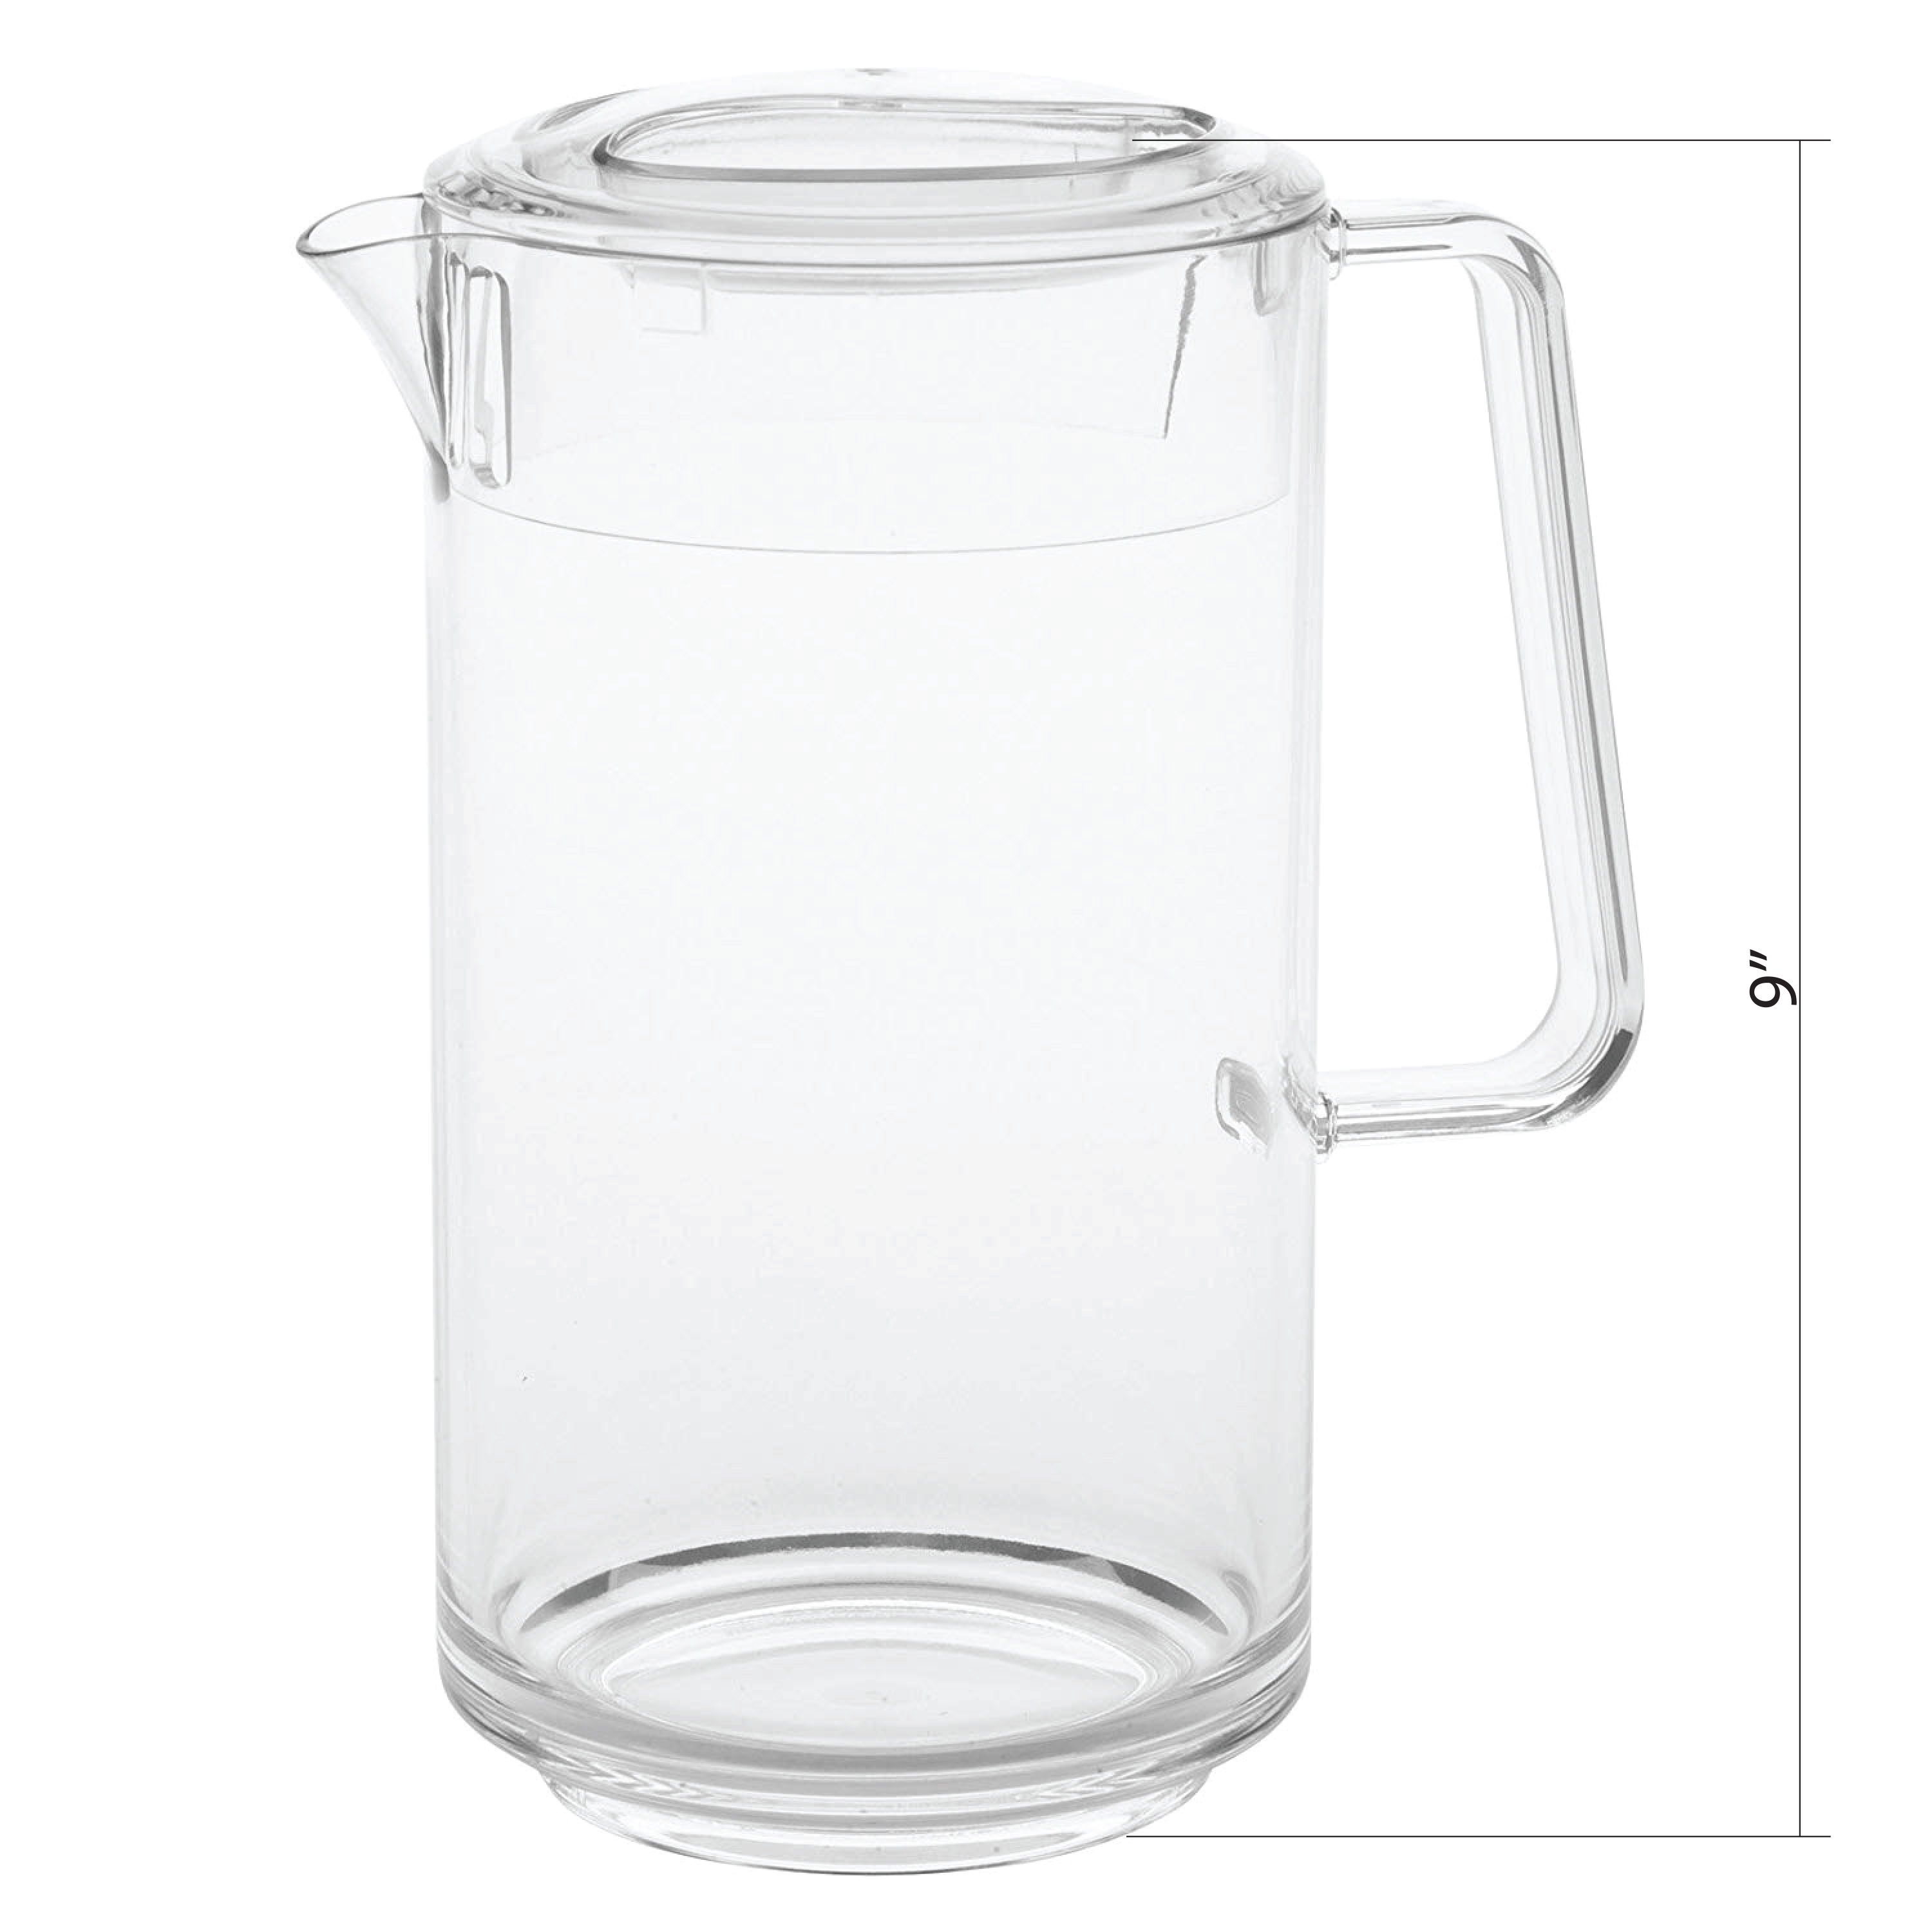 Zak Tabletime 2 quart Water Pitcher, Clear slideshow image 4